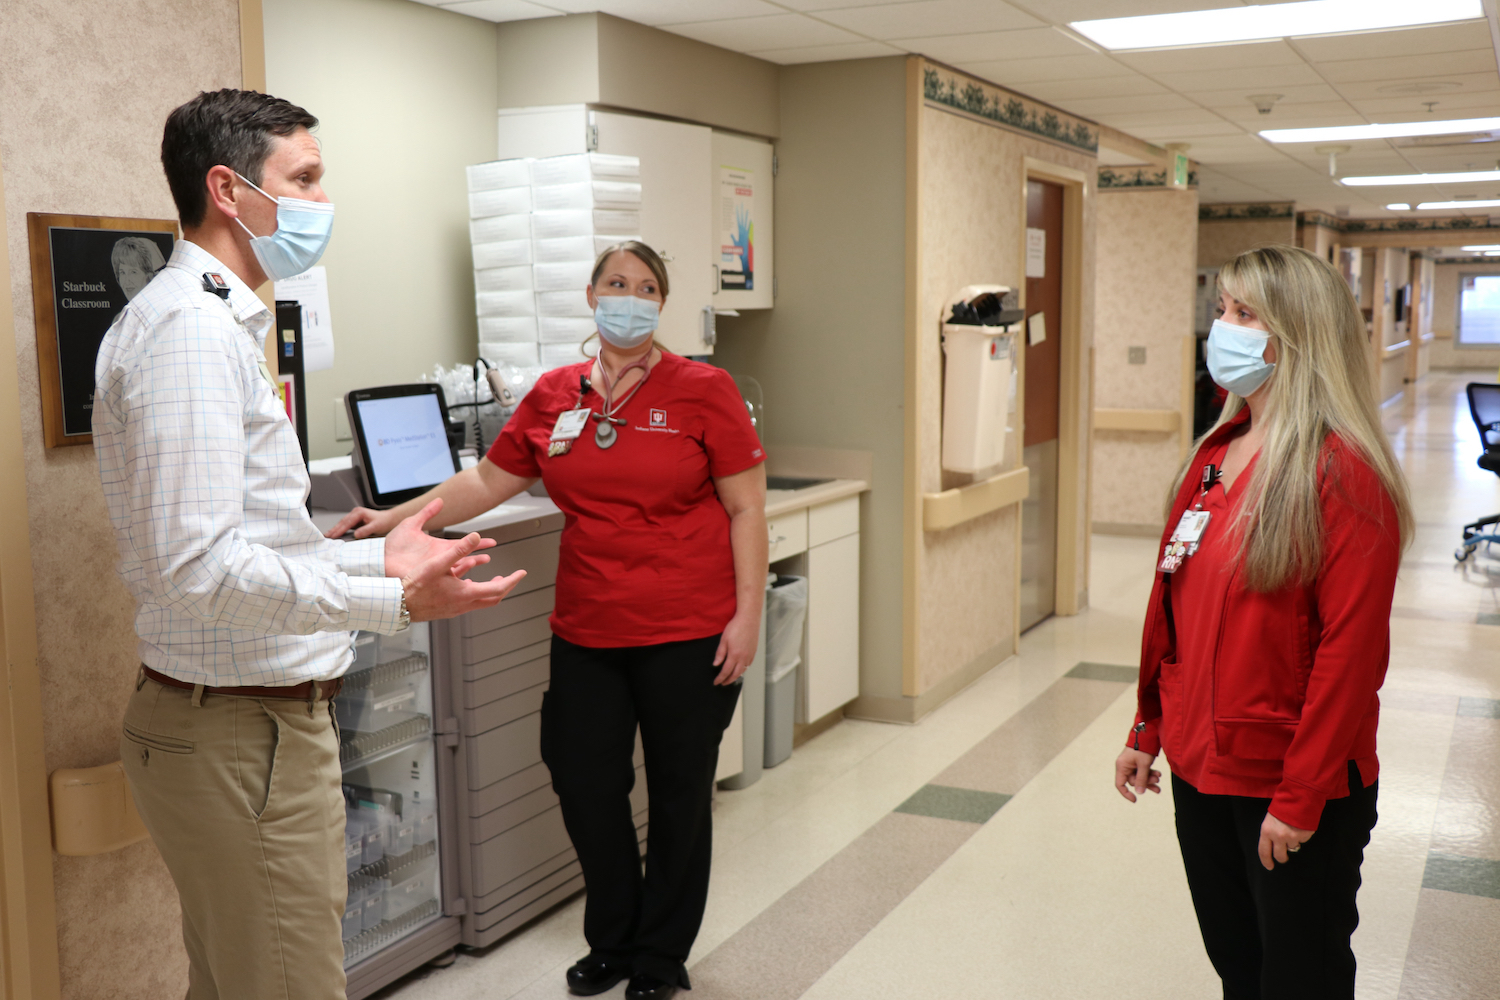 Healthcare workers converse in the hallway